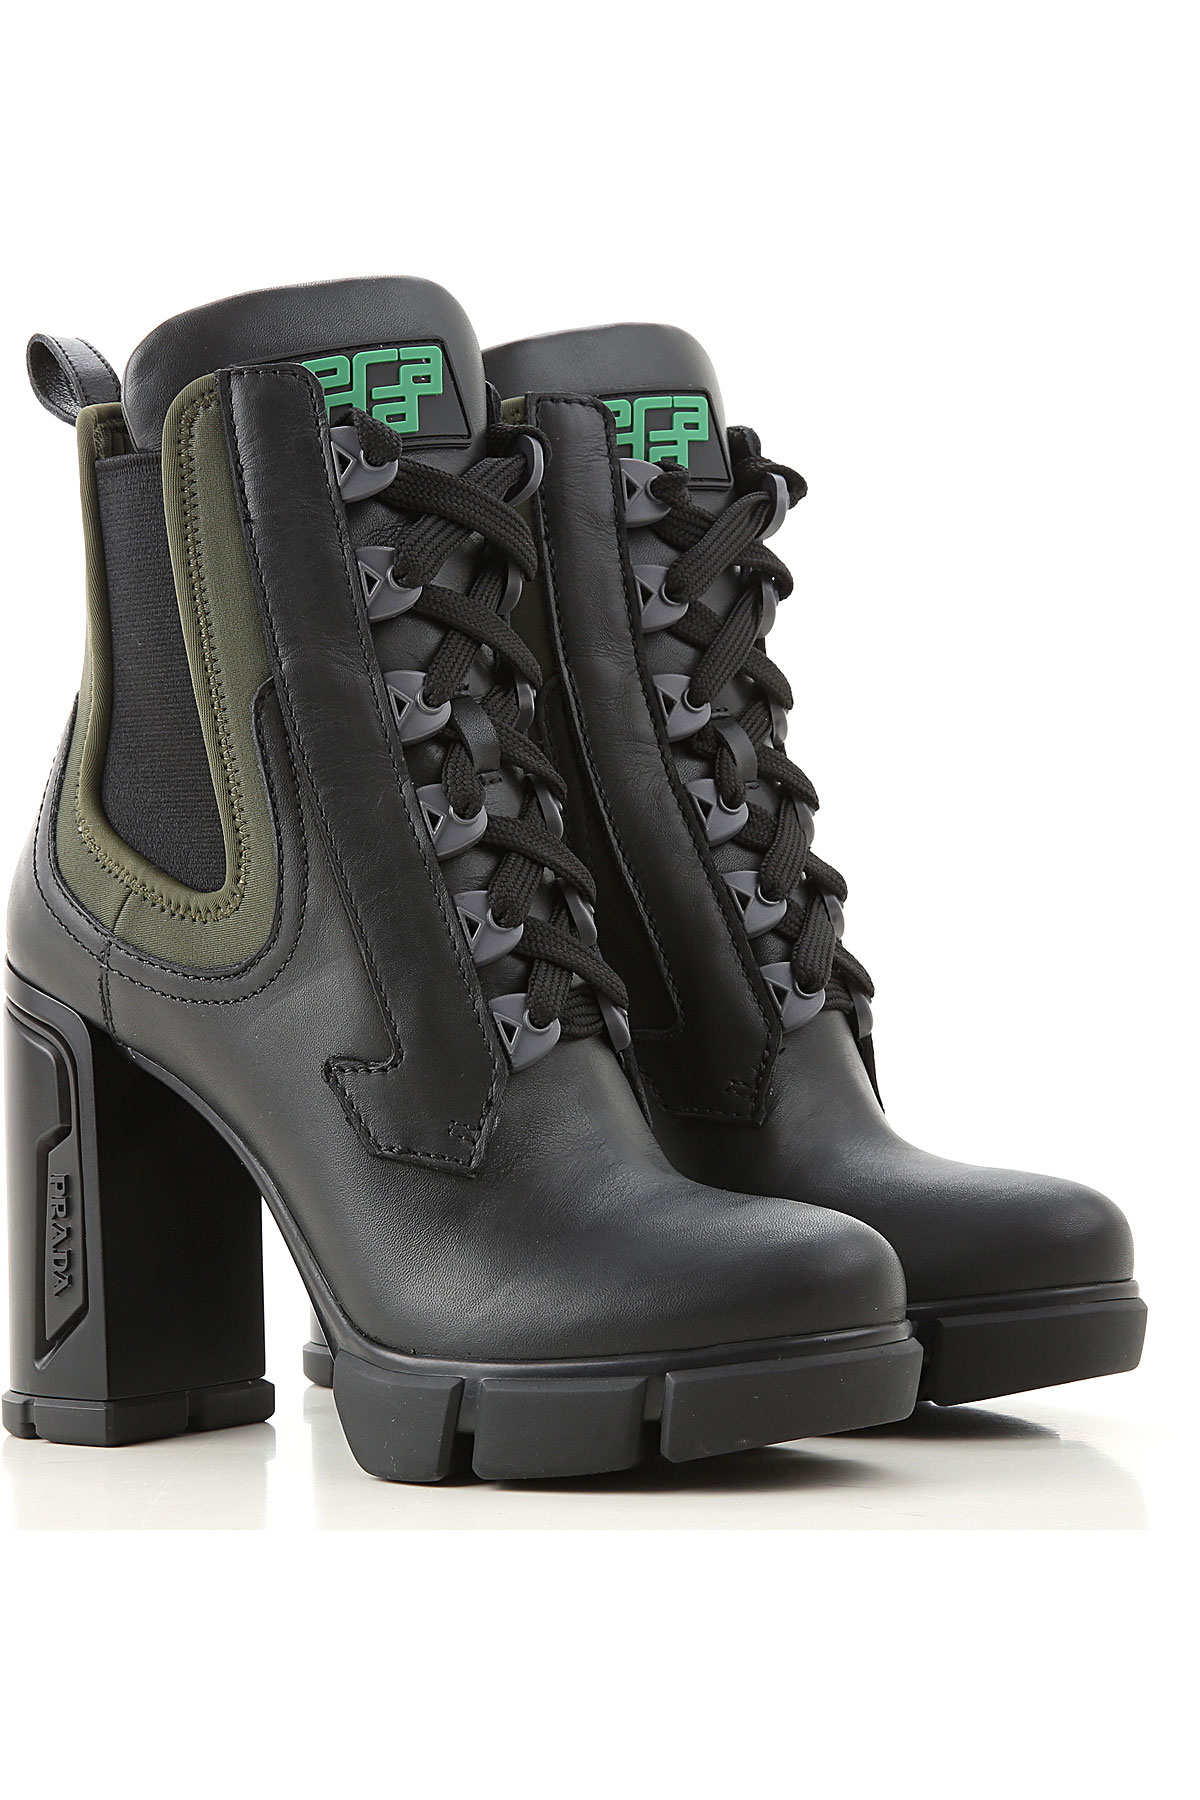 Prada Boots for Women, Booties On Sale, Black, Leather, 2019, 10 5 6 7